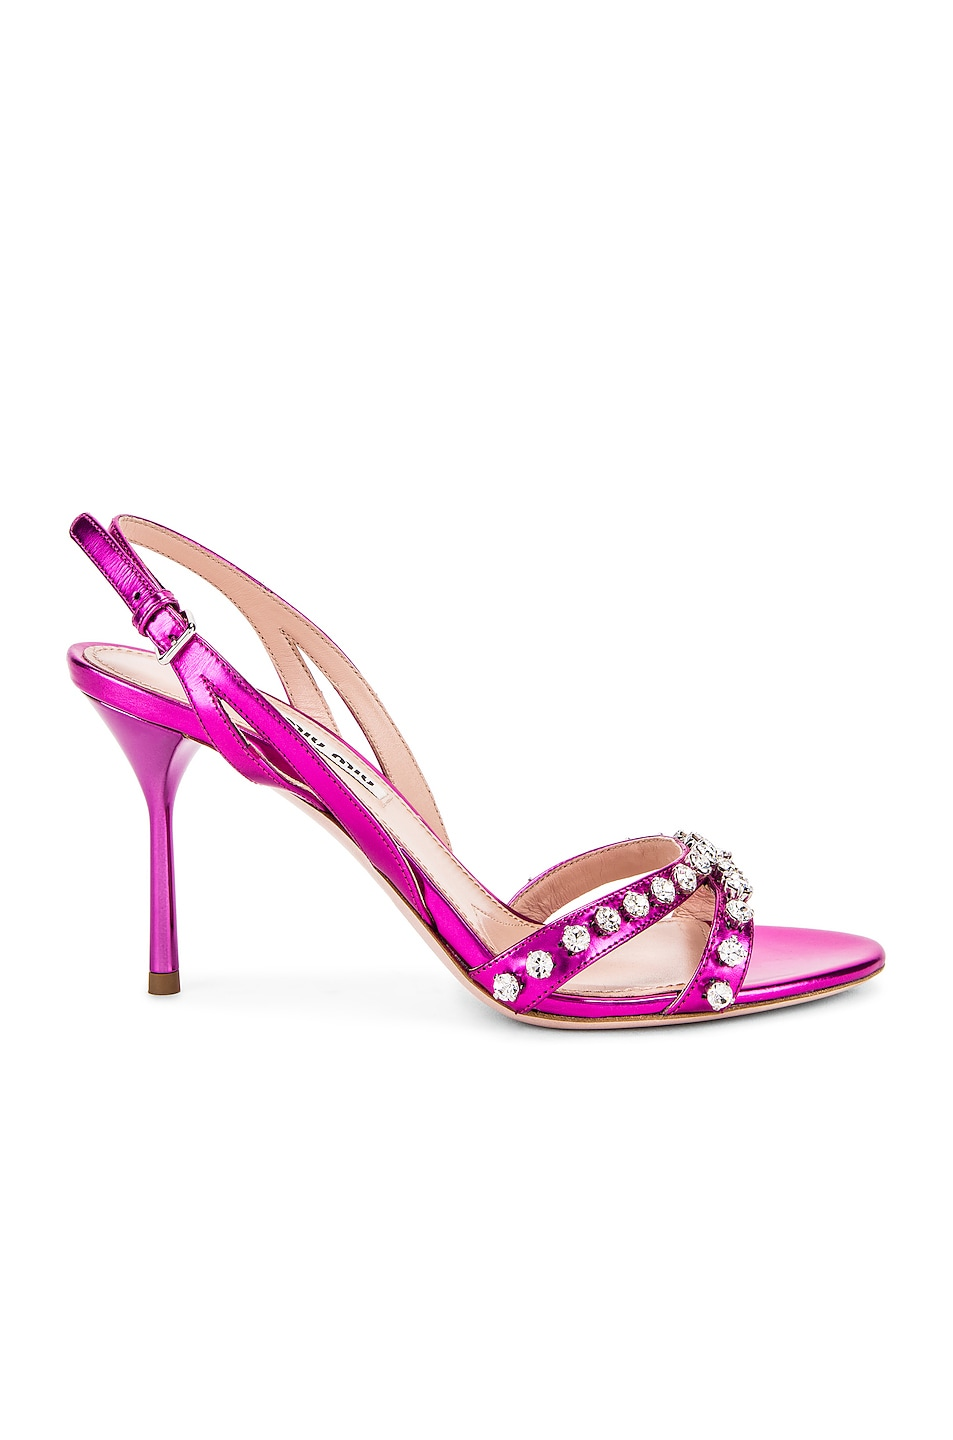 Image 1 of Miu Miu Jeweled Slingback Sandals in Fuchsia